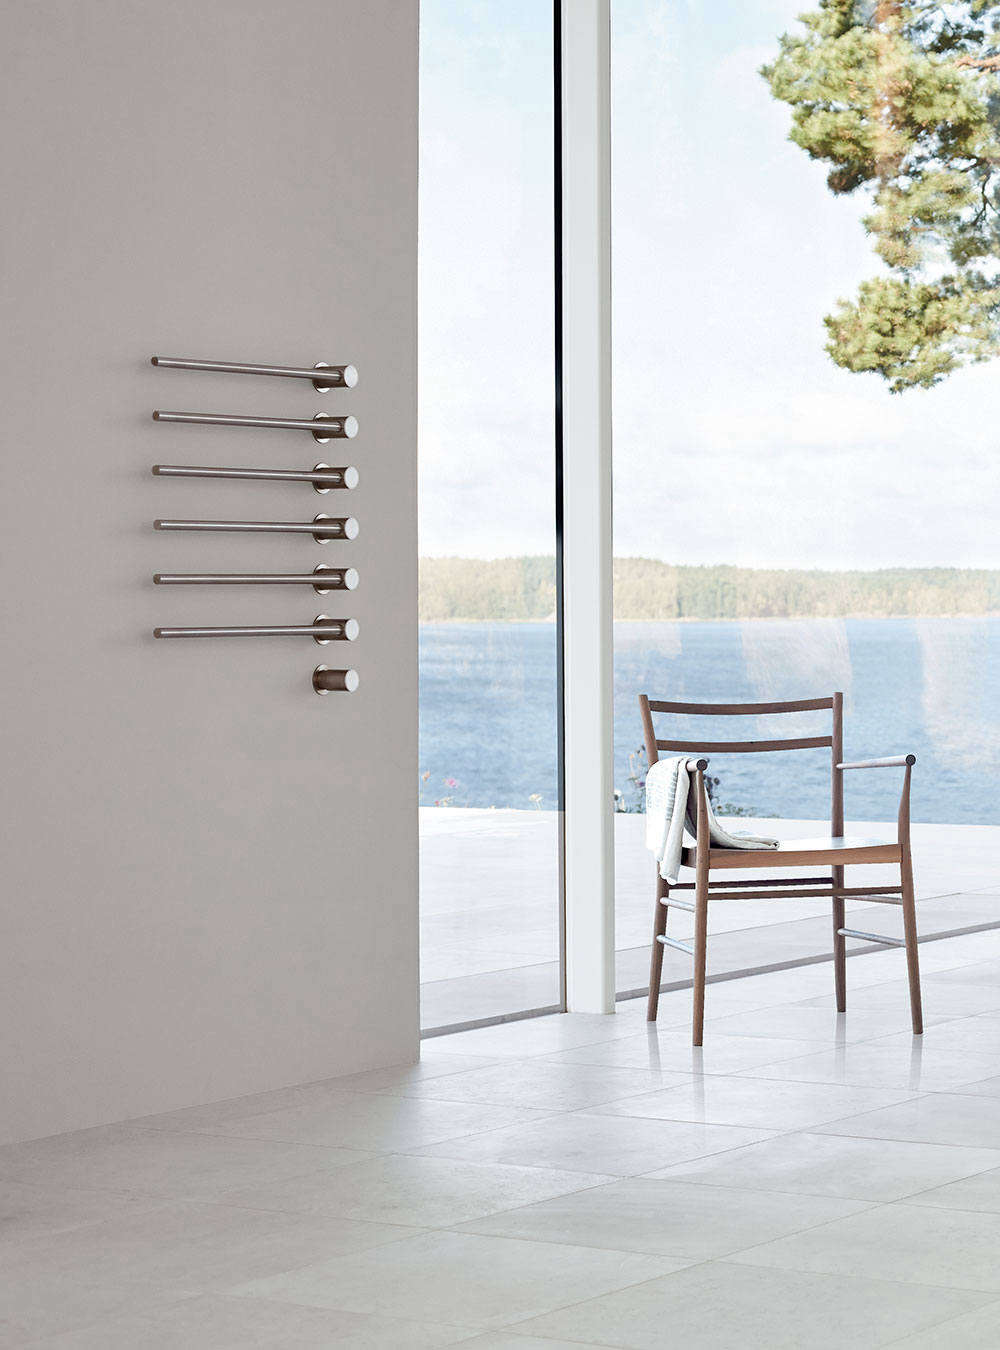 On the high end of the pricing spectrum, the Vola Stainless Steel Built-in Heated Electric Towel Warmer with Thermostat can be customized from 3 up to 10 towel bars starting at $4,515 at Quality Bath. It's also available in Chrome starting at $3,357. For those who prefer a hydronic warmer, the Vola comes as a hydronic system as well.